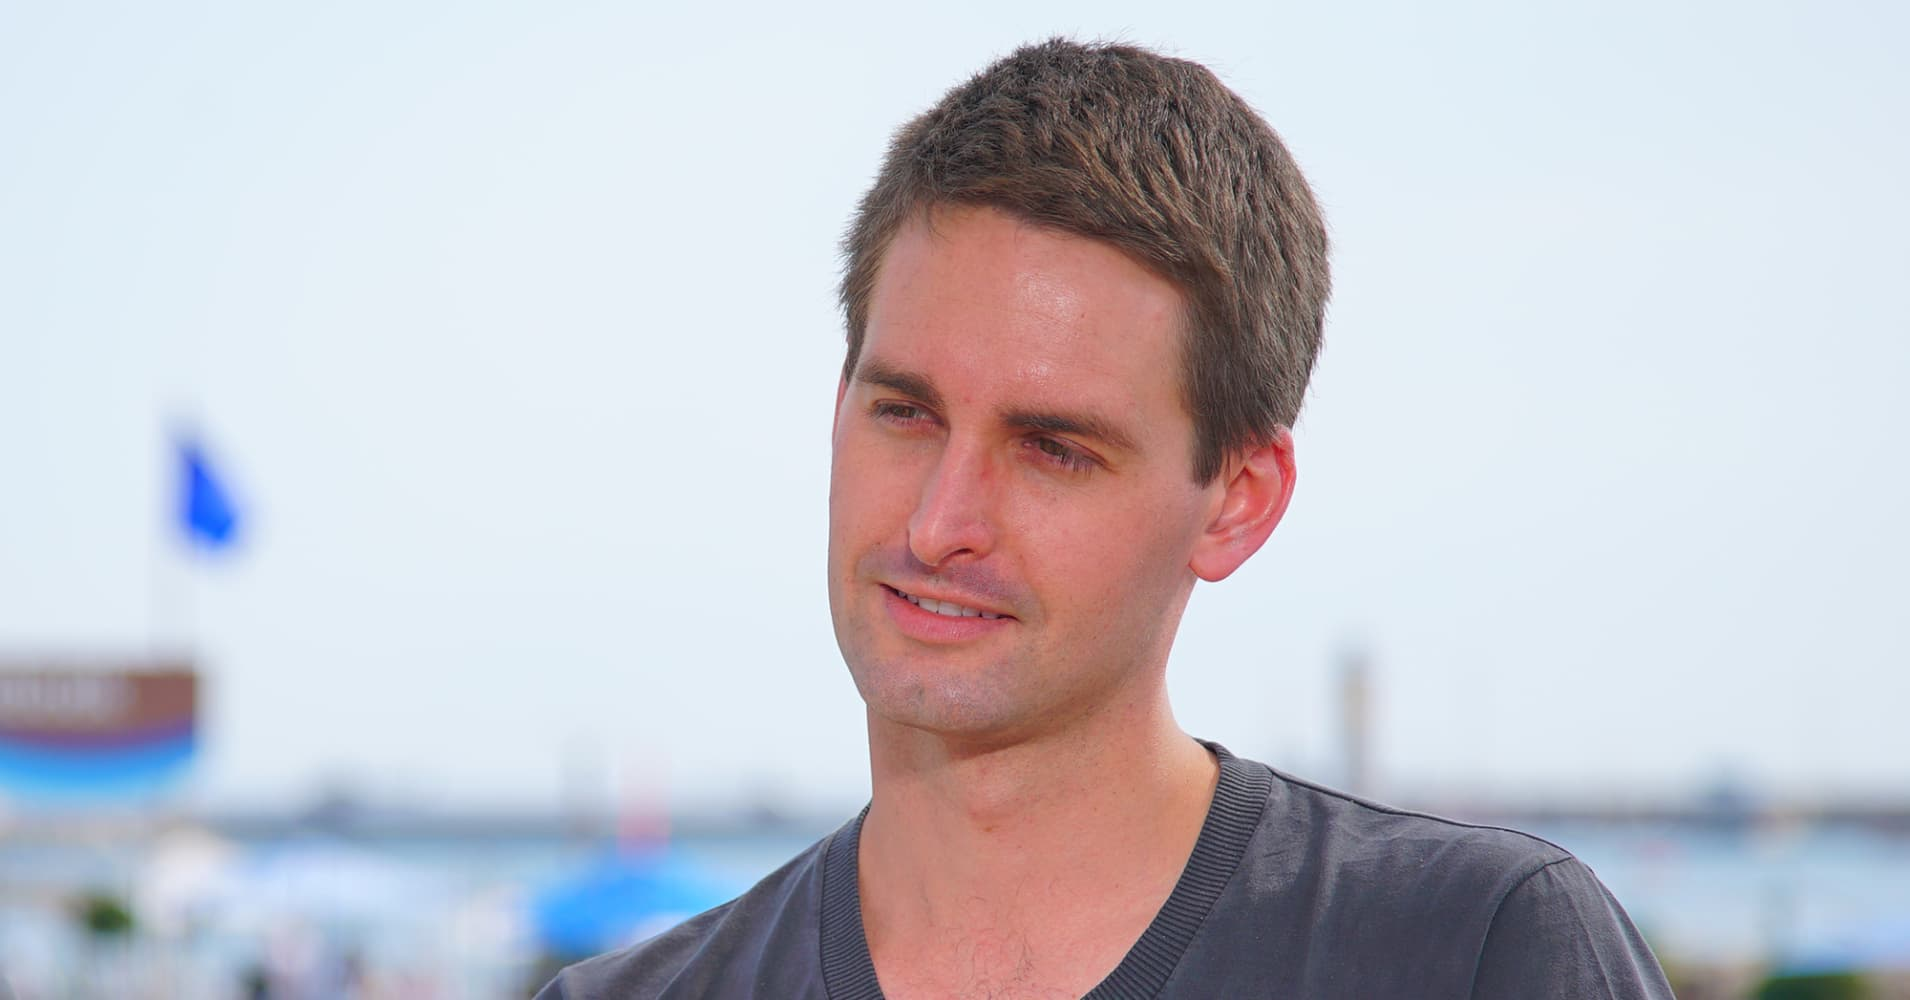 Snap plunges after its earnings beat as analysts say it's going to take longer to get profitable